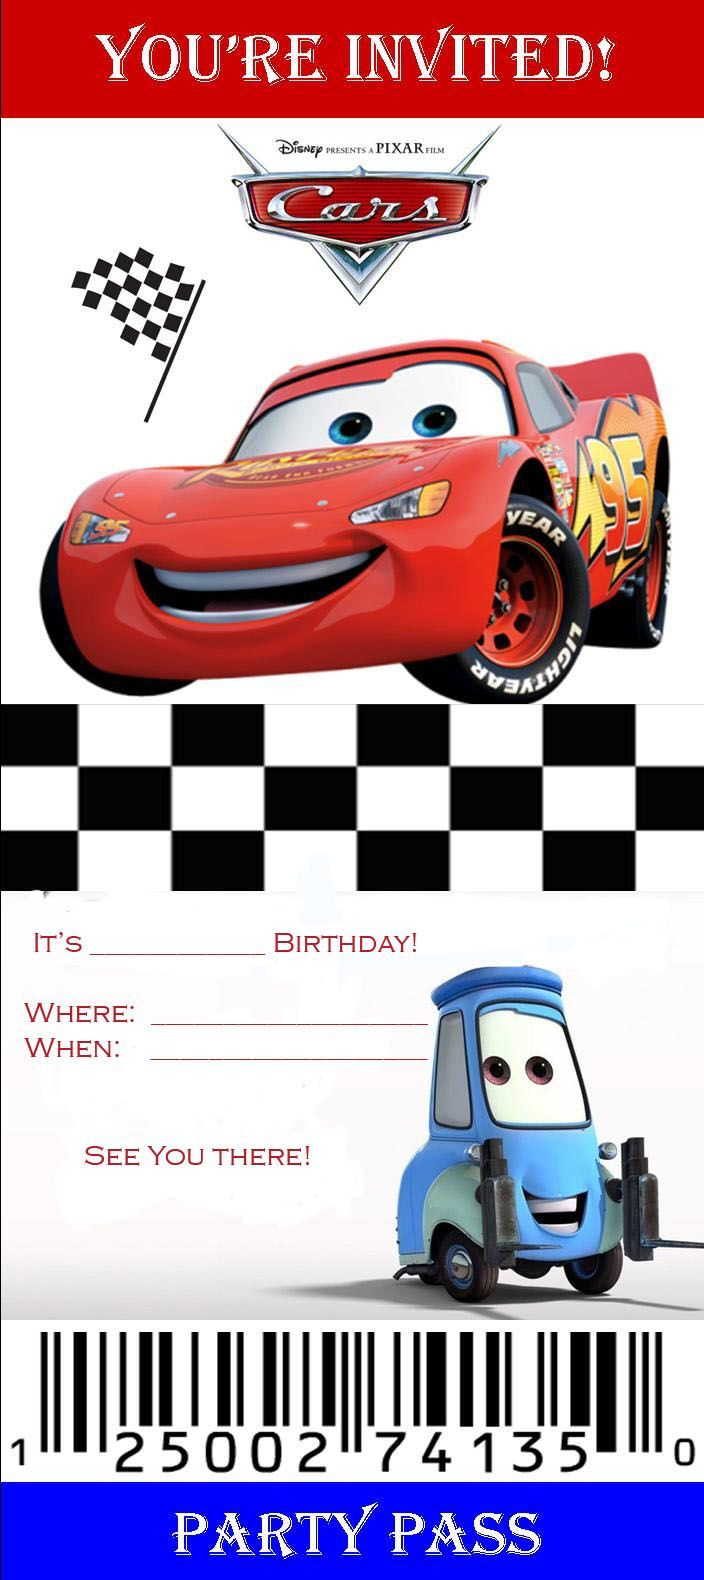 Pinmonica Guajardo On Kids | Cars Birthday Invitations, Disney - Free Printable Disney Cars Birthday Party Invitations